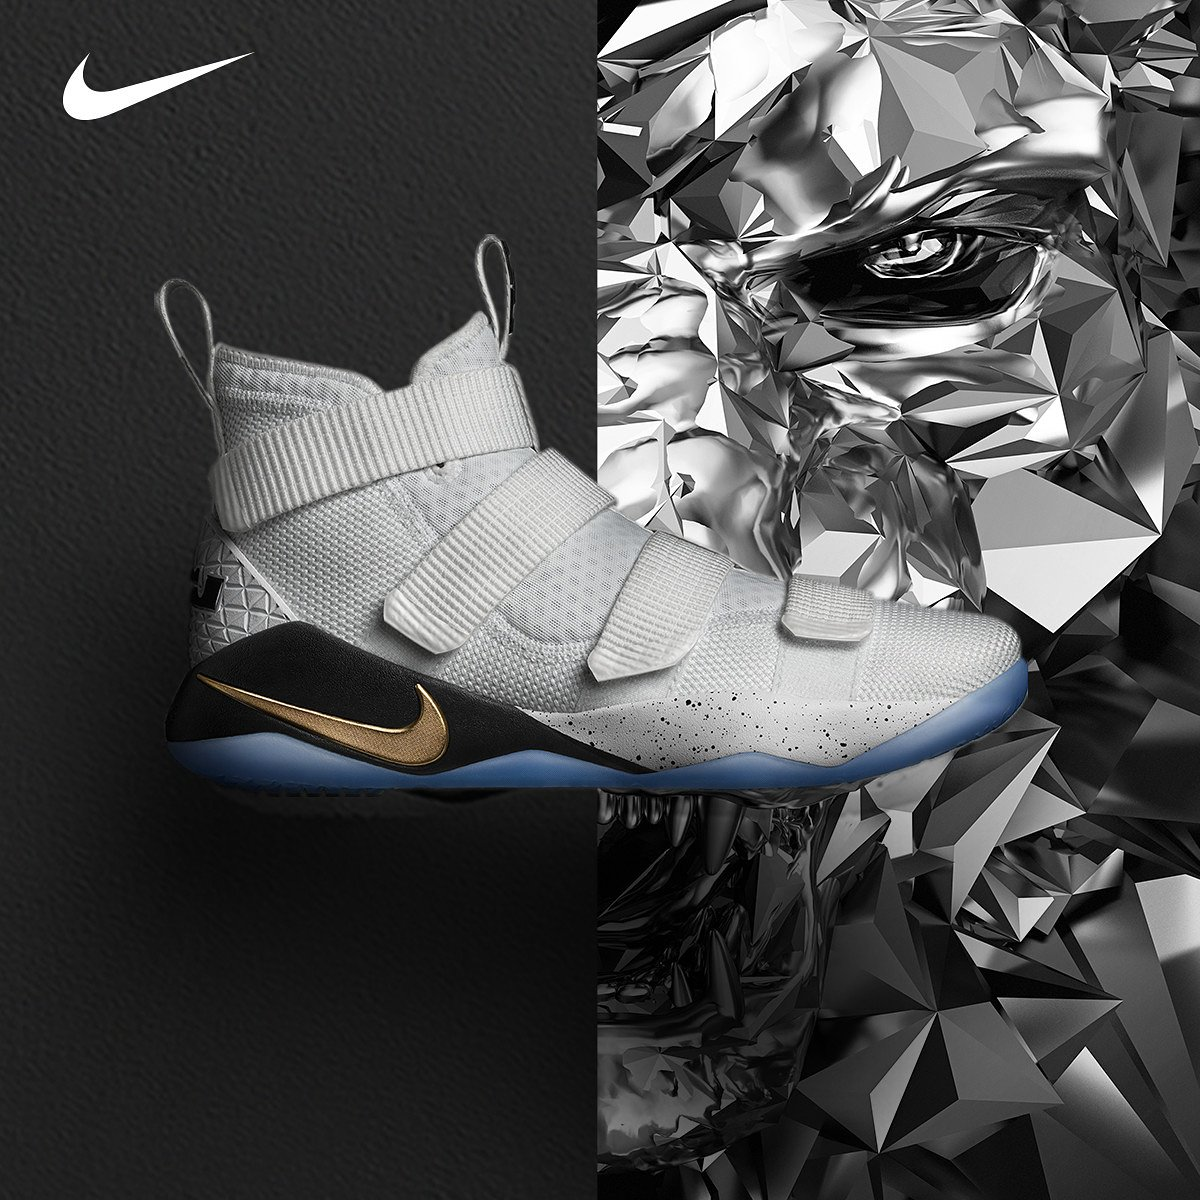 f38b09145388 strap in for battle the nike zoom lebron soldier 11 court general releases  tomorrow at select